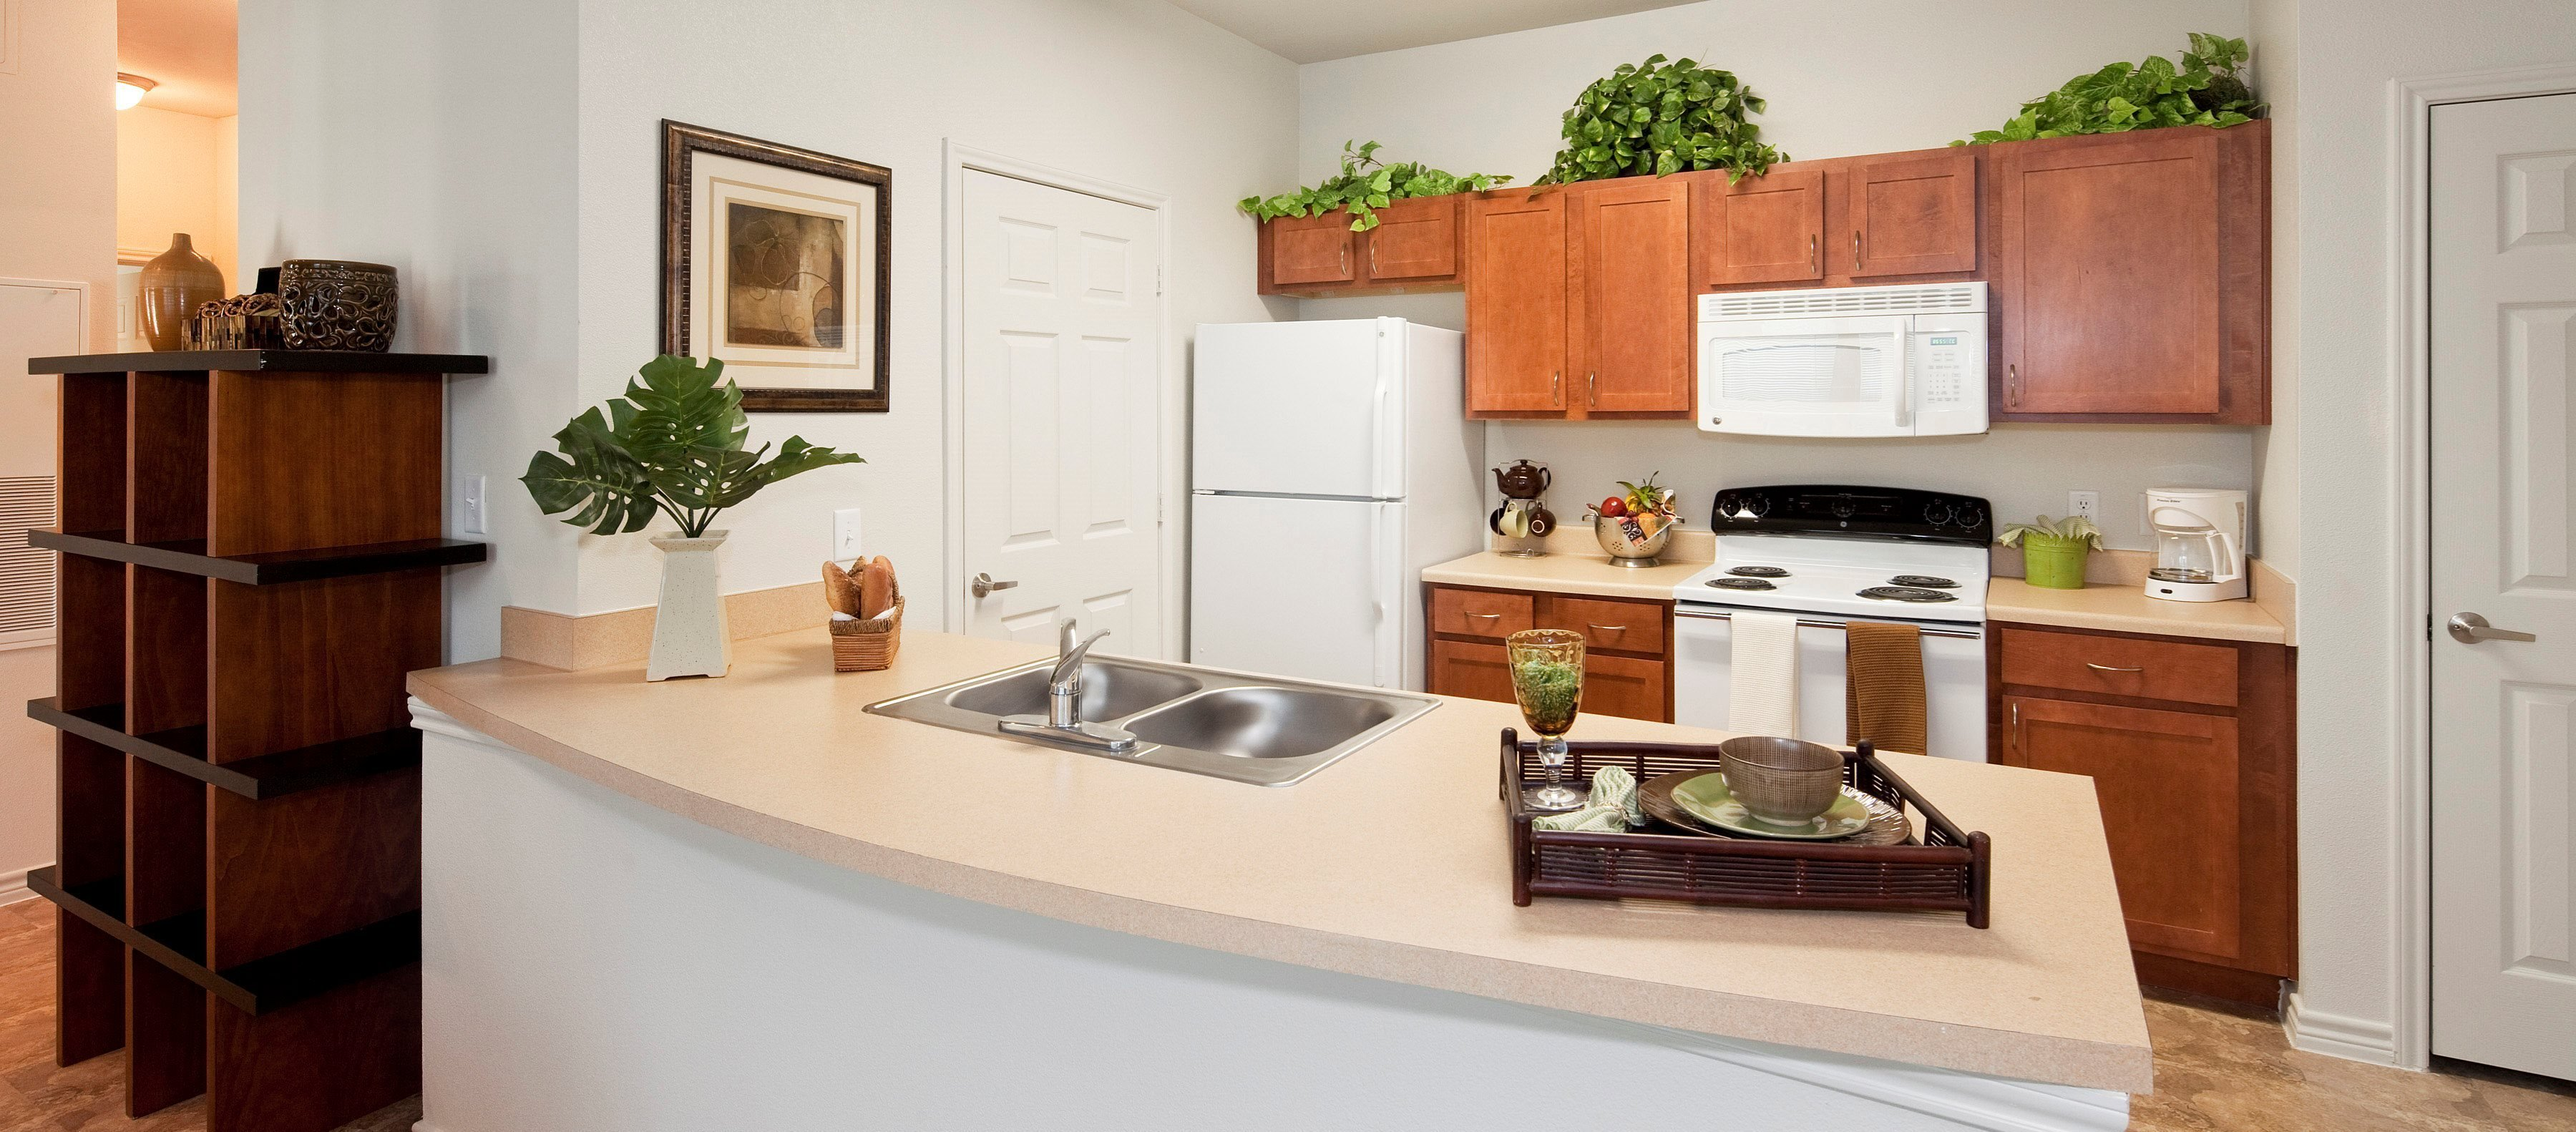 Best 7 Two Bedroom Apartment In San Marcos Tx Facefabskin Com With Pictures